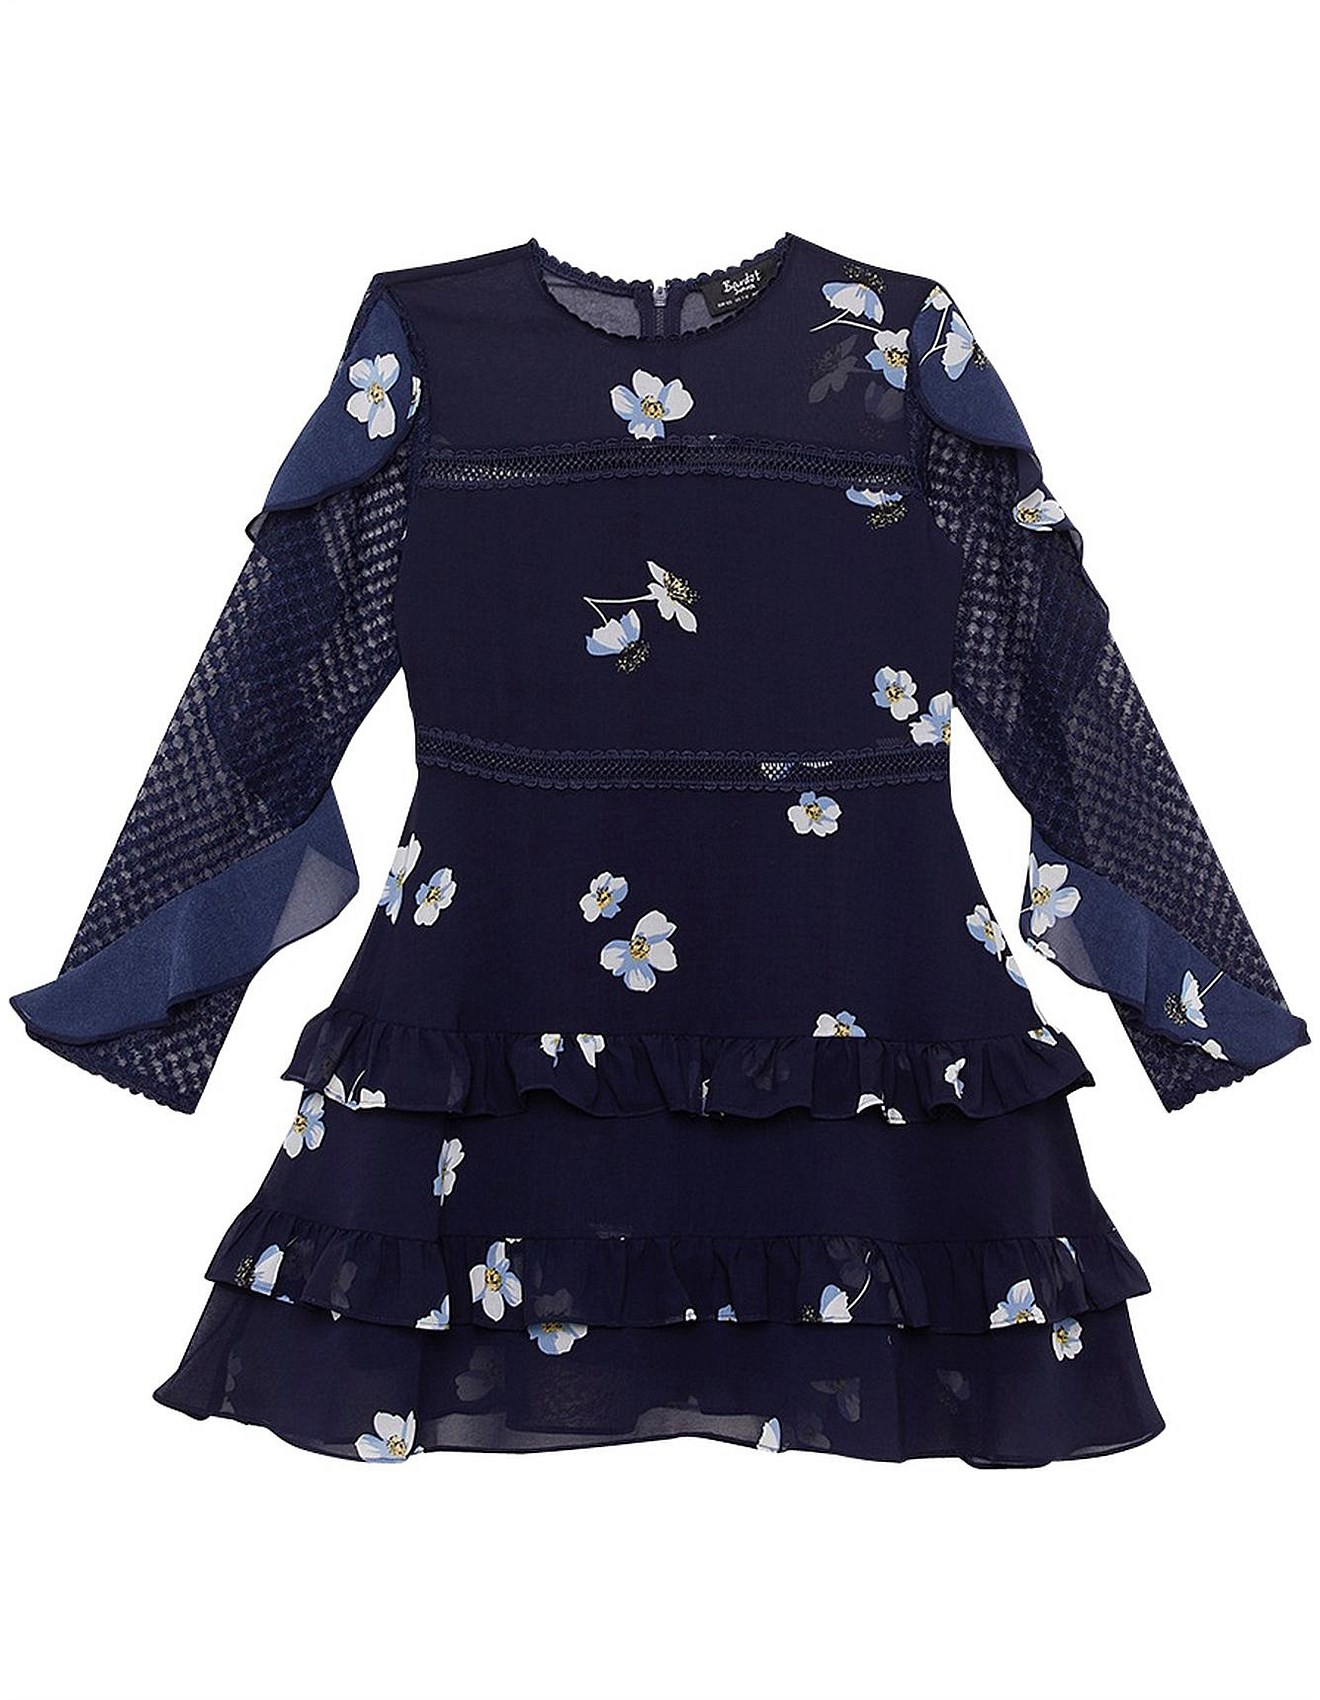 fba96ccb5 Girls Clothing - EMMELINE DRESS